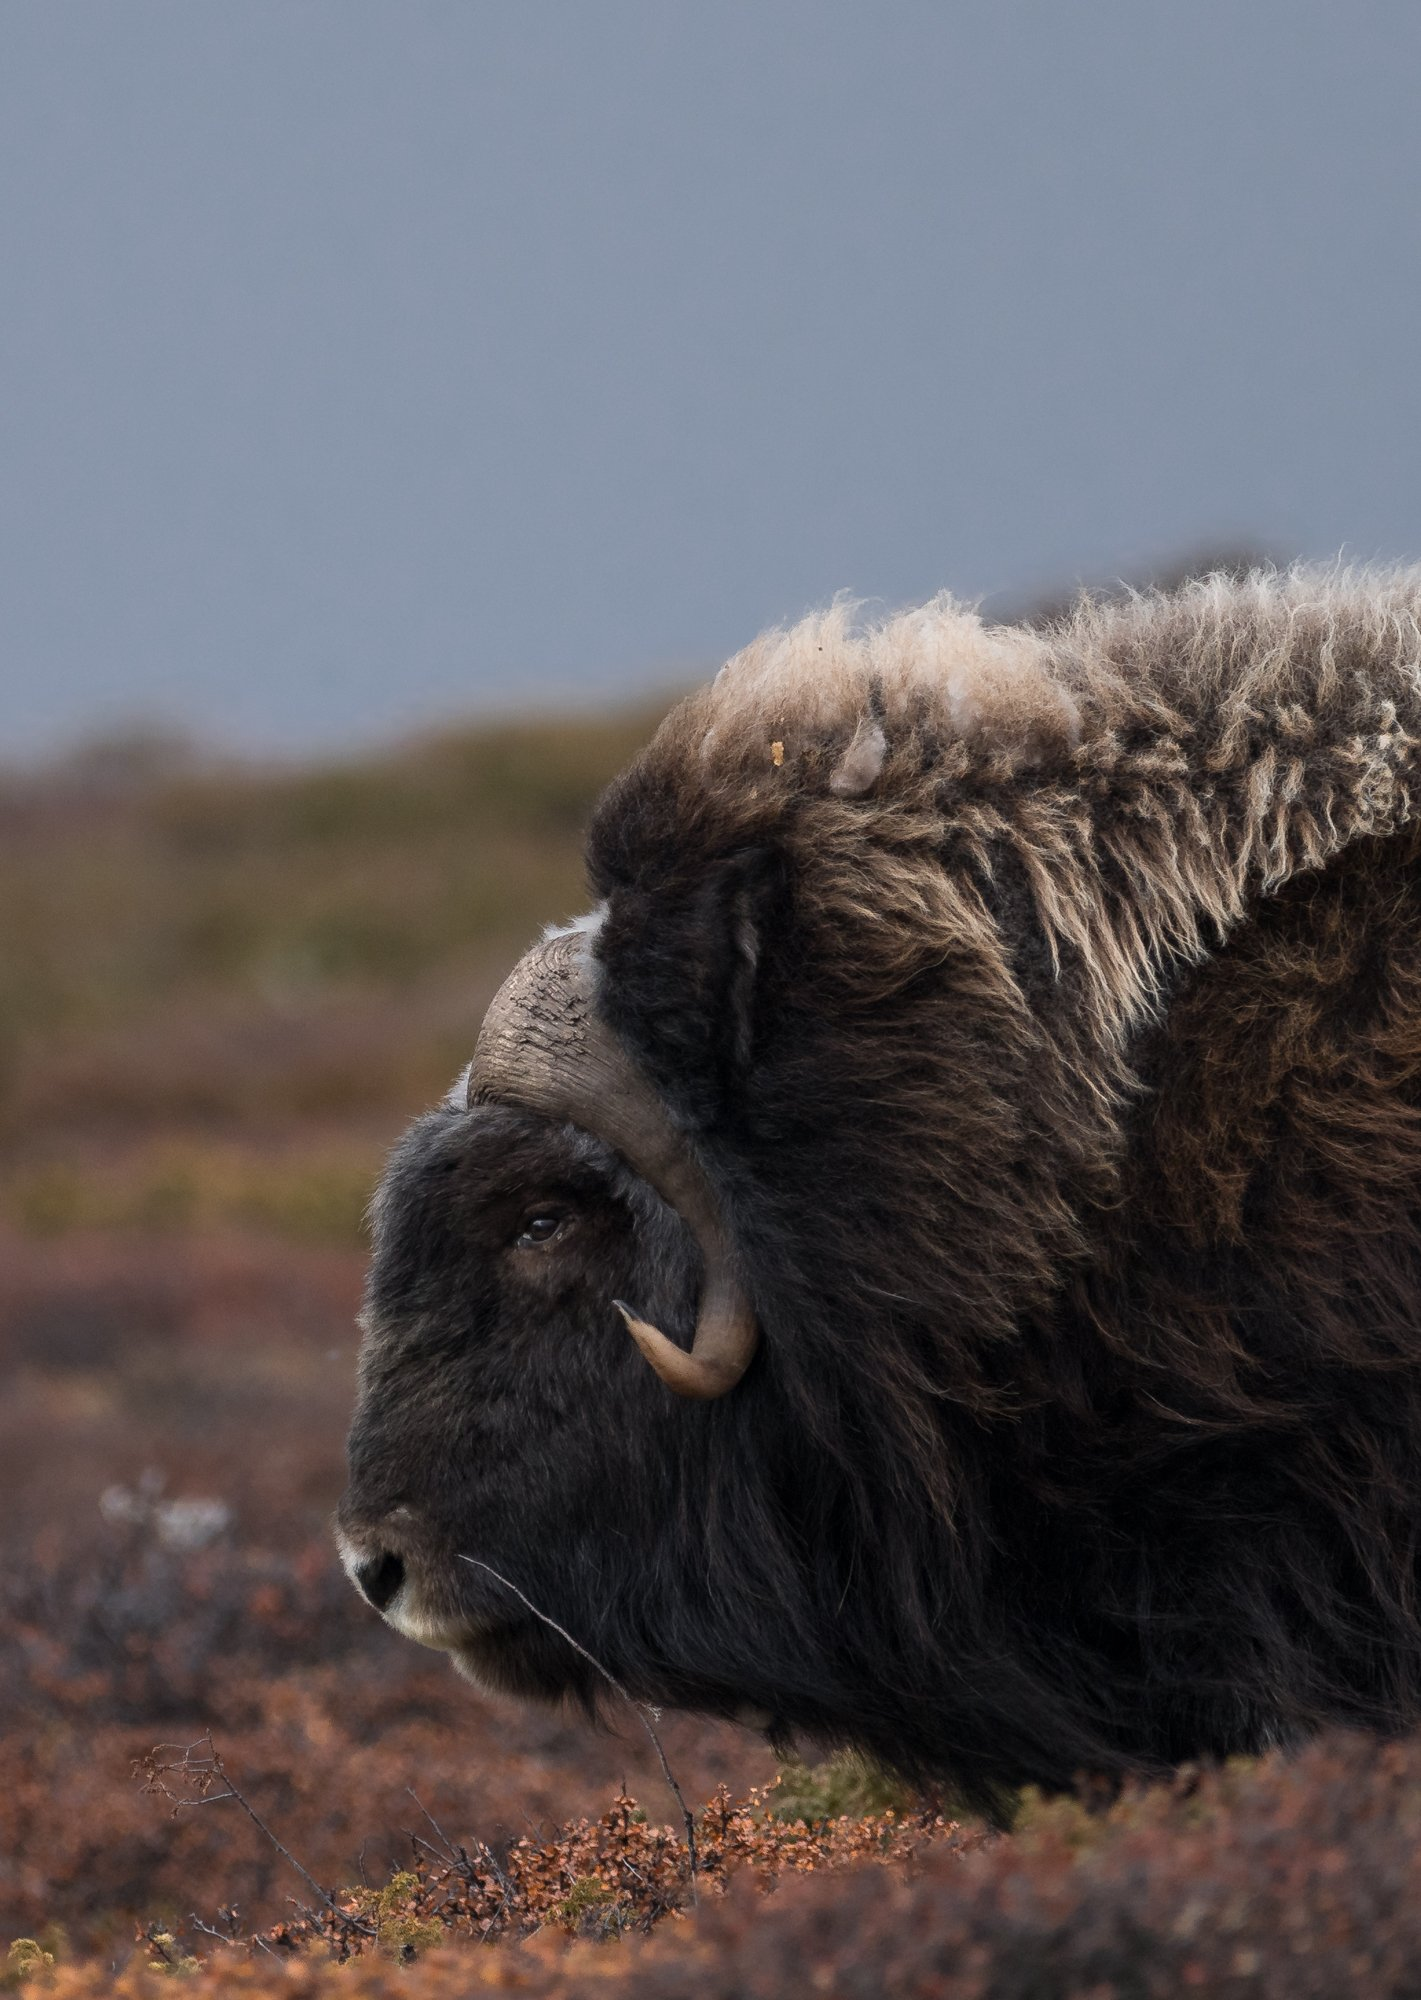 musk ox, animals, norway, dovre, landscape, autumn, Sylwia Grabinska